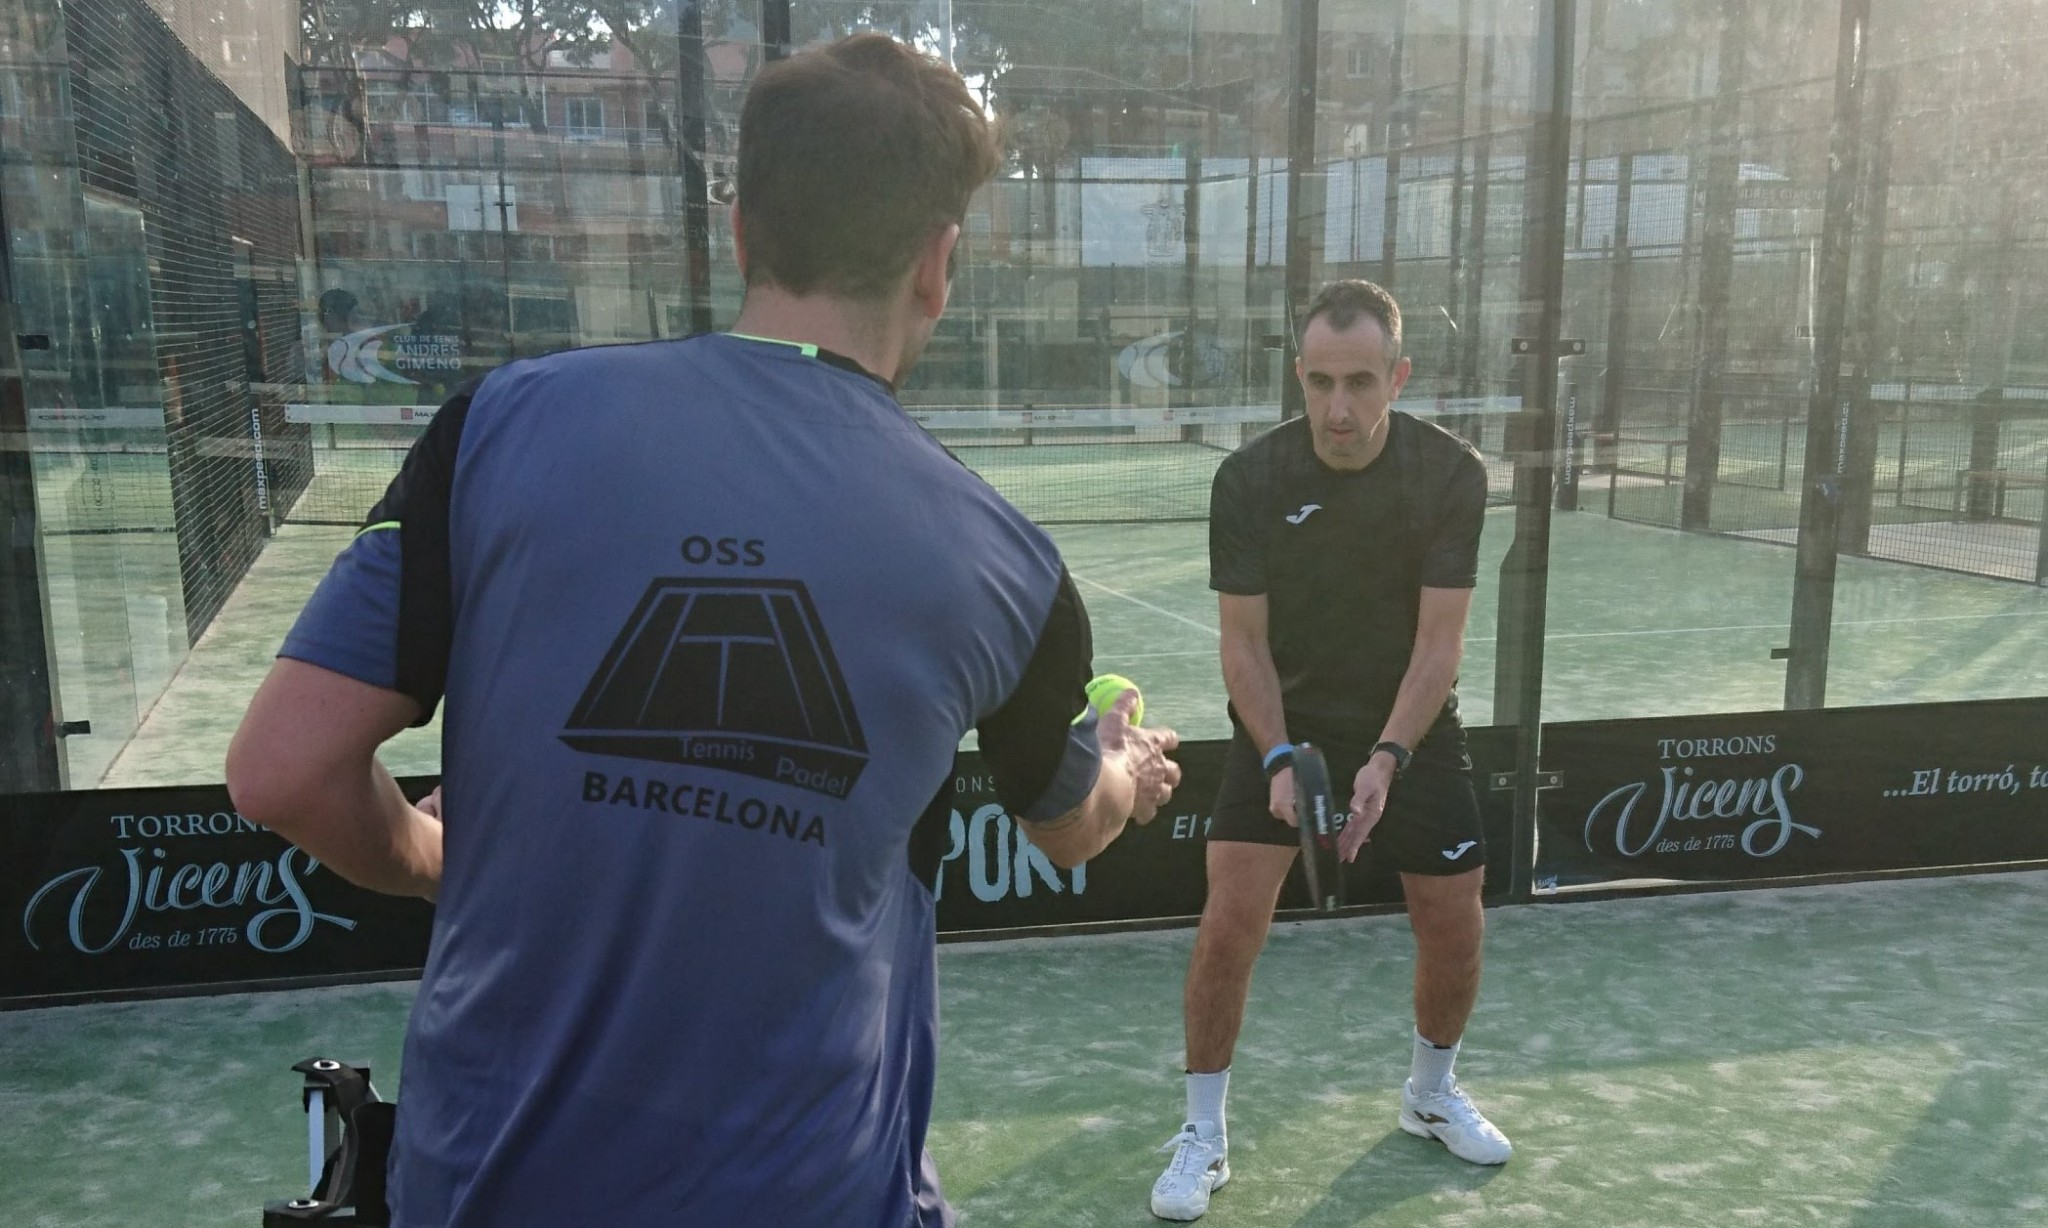 stage padel oss barcelone|world padel tour stage padel